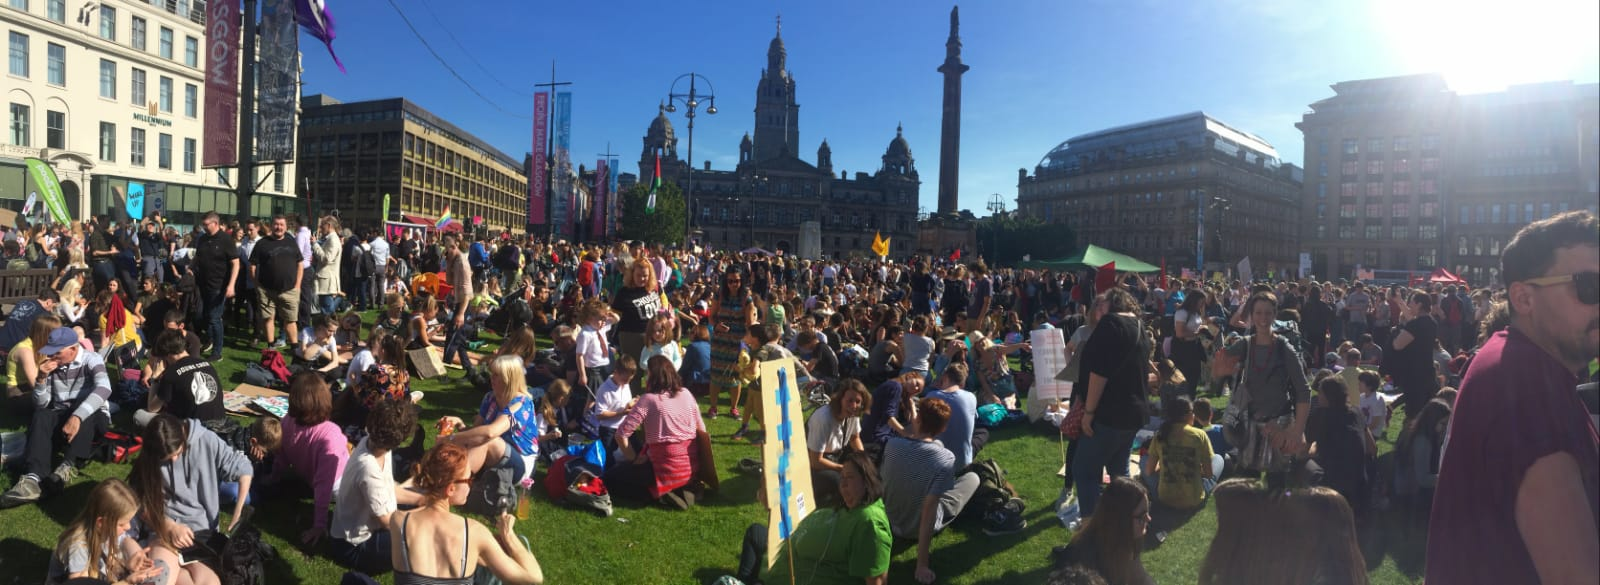 Climate Change Protest in Glasgow